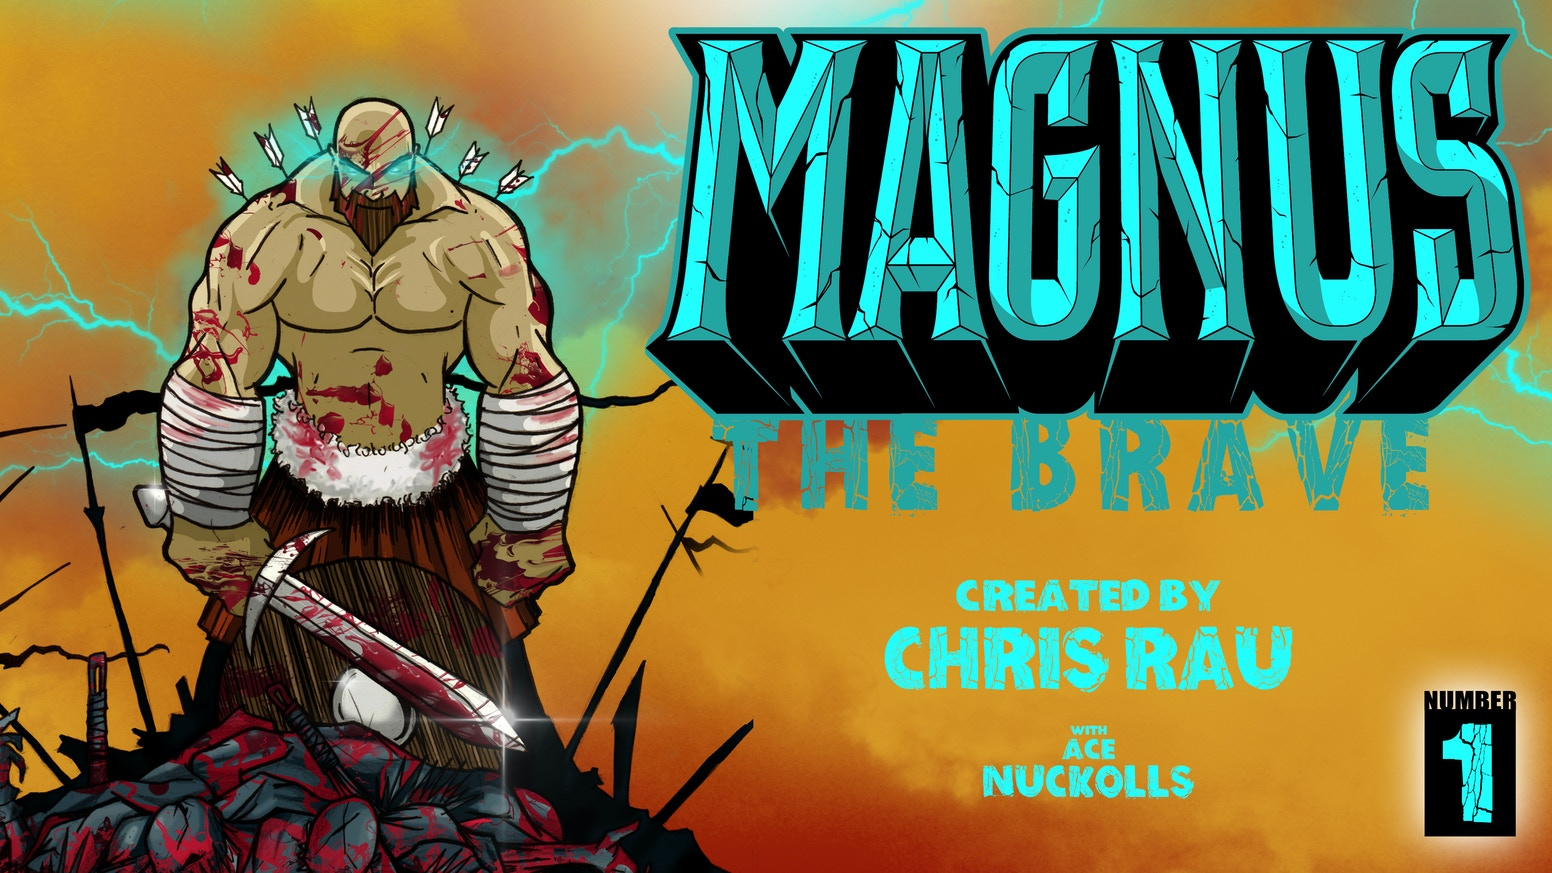 Magnus The Brave, the debut comic book from artist/creator Chris Rau, tells the story of a super-powered barbarian and his adventures.